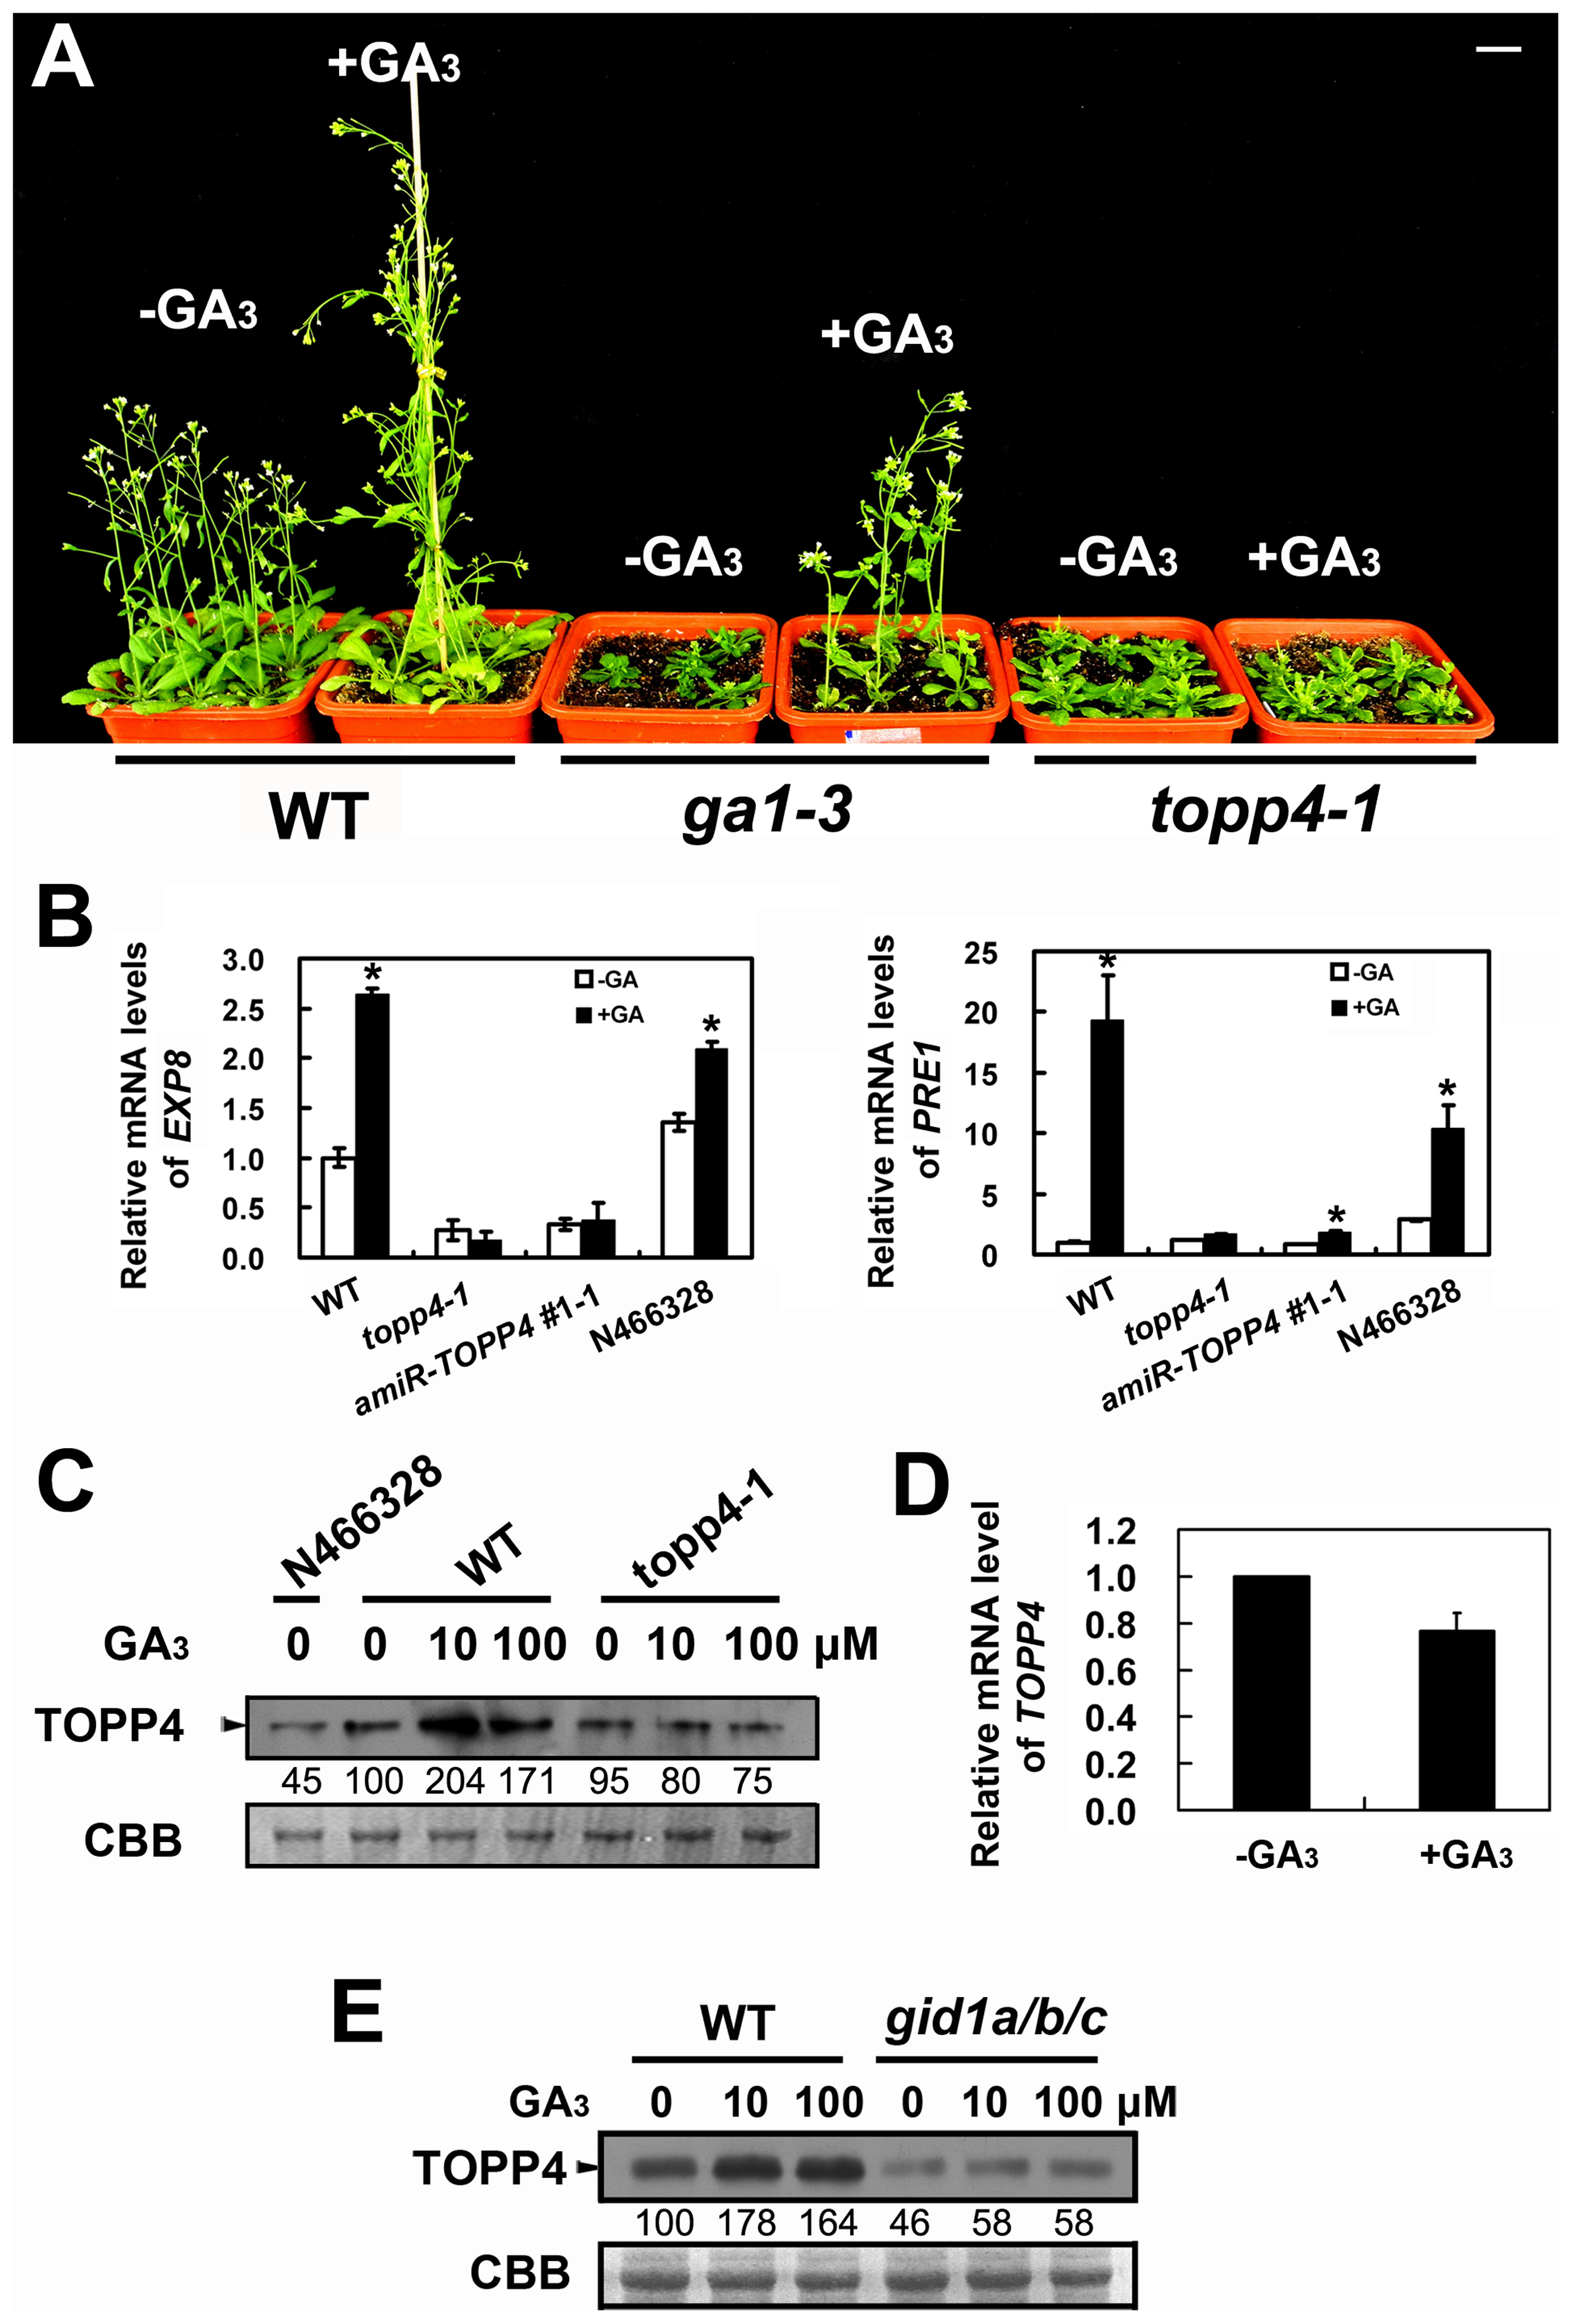 <i>topp4-1</i> is insensitive to exogenously applied GA<sub>3</sub>, and GA enhances the TOPP4 protein level through a GA-GID1 pathway.